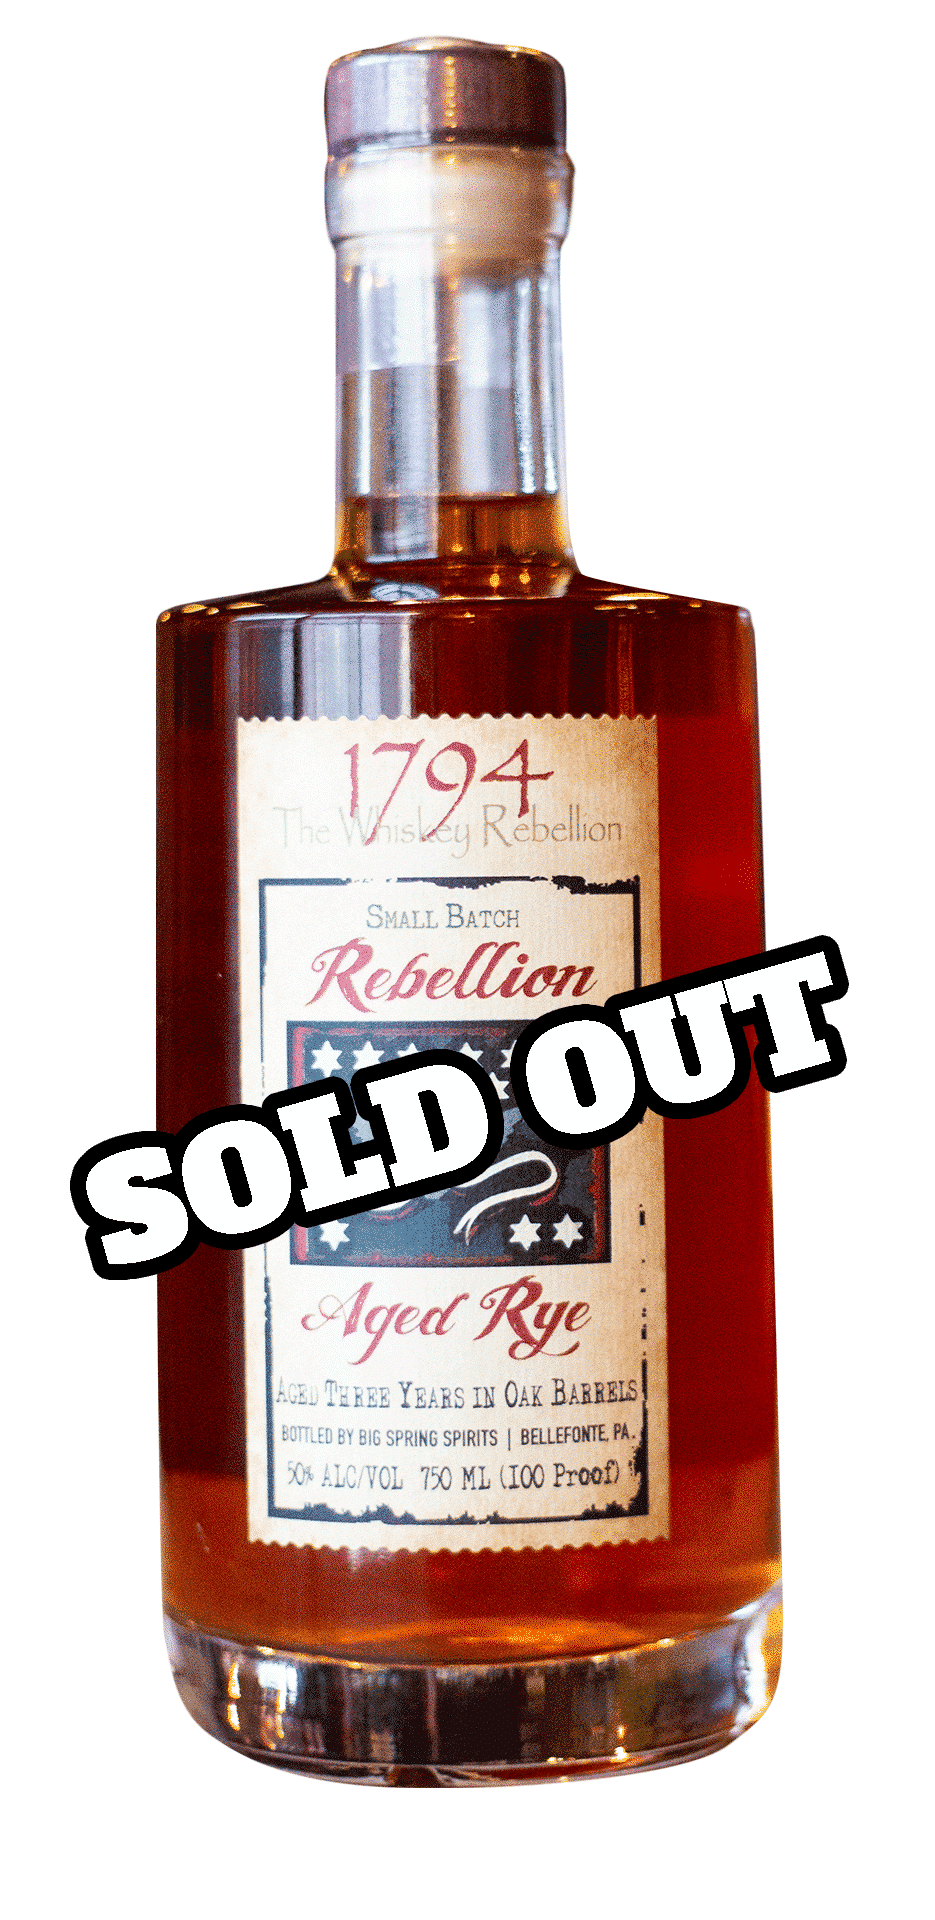 Aged Rye sold out